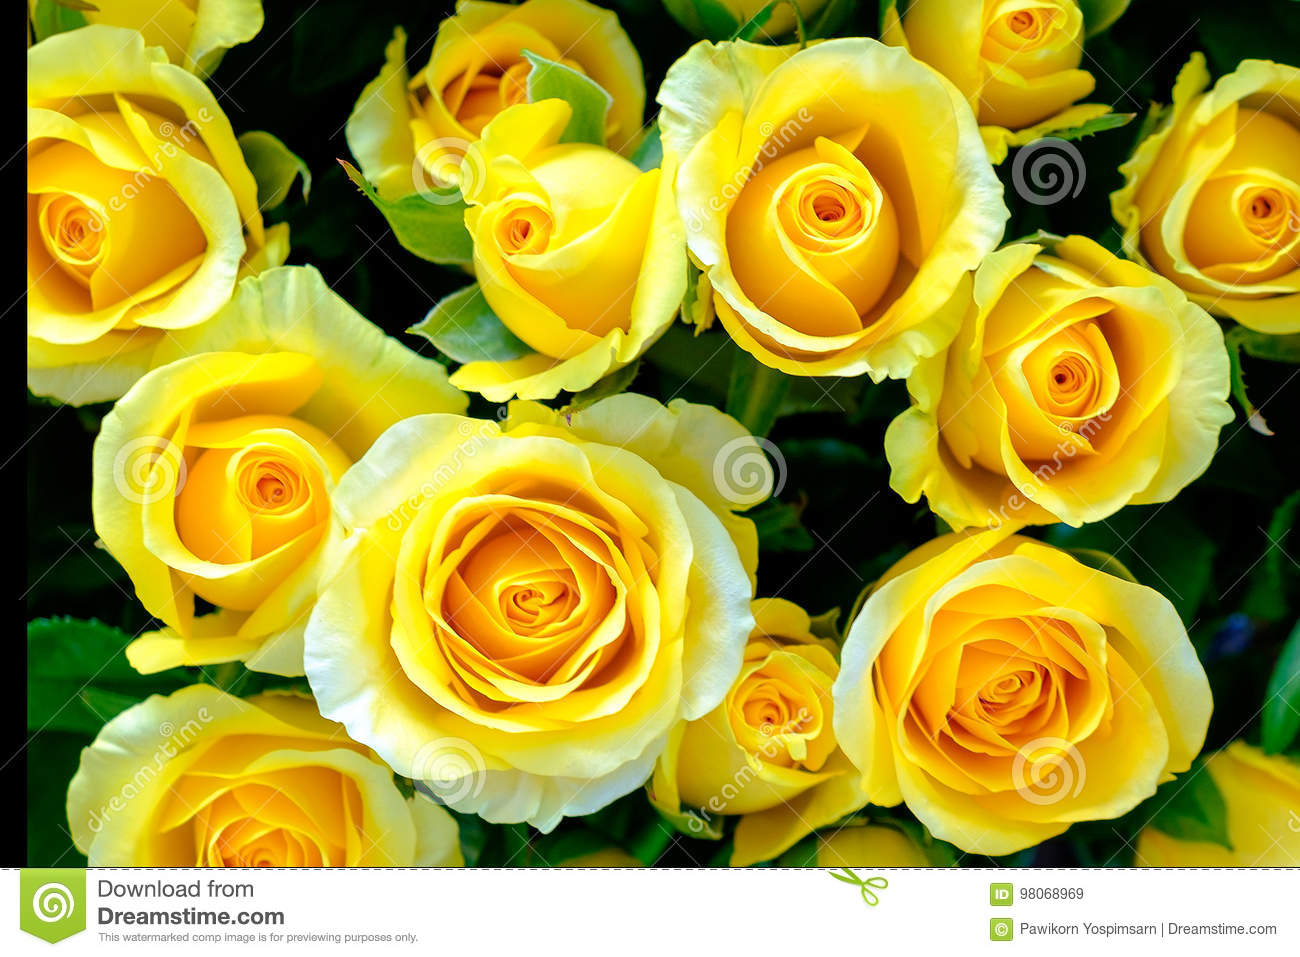 The Image Of Yellow Roses Flower Top View Close Up For Background Or